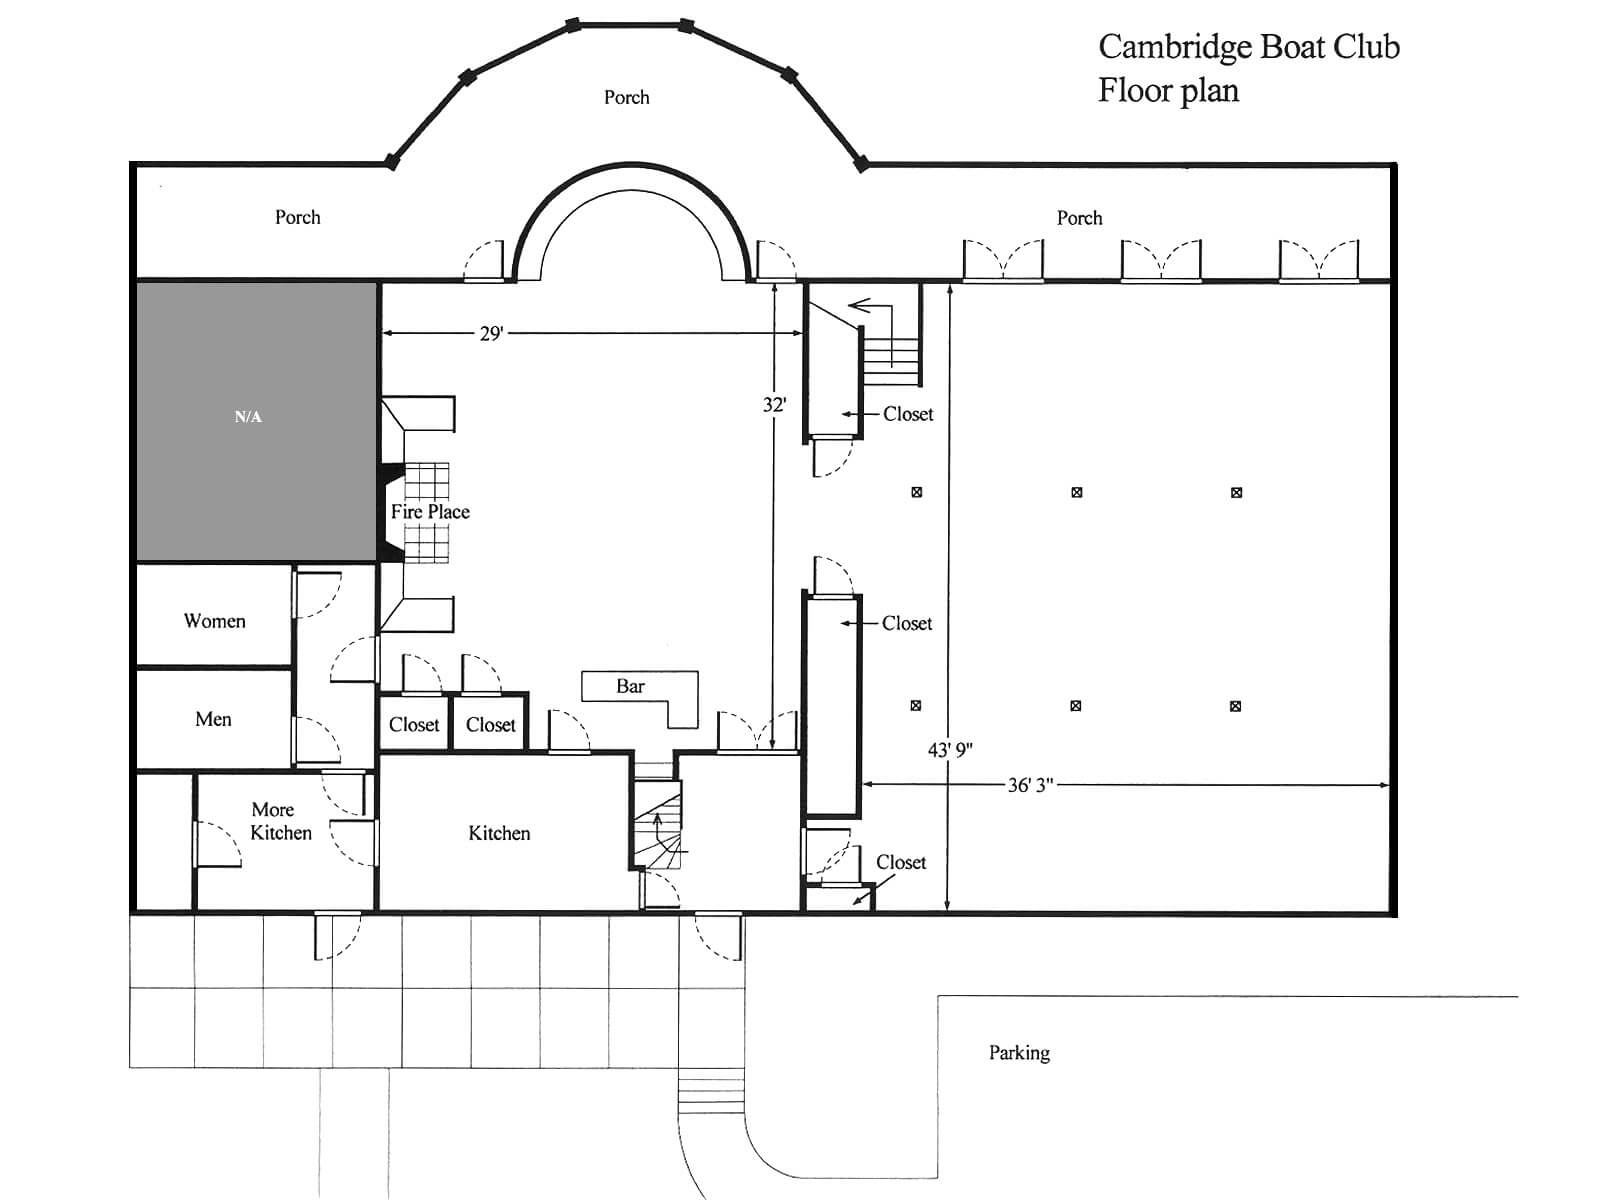 Floor plan of the cambridge boat club cambridge boat club for Floor layout